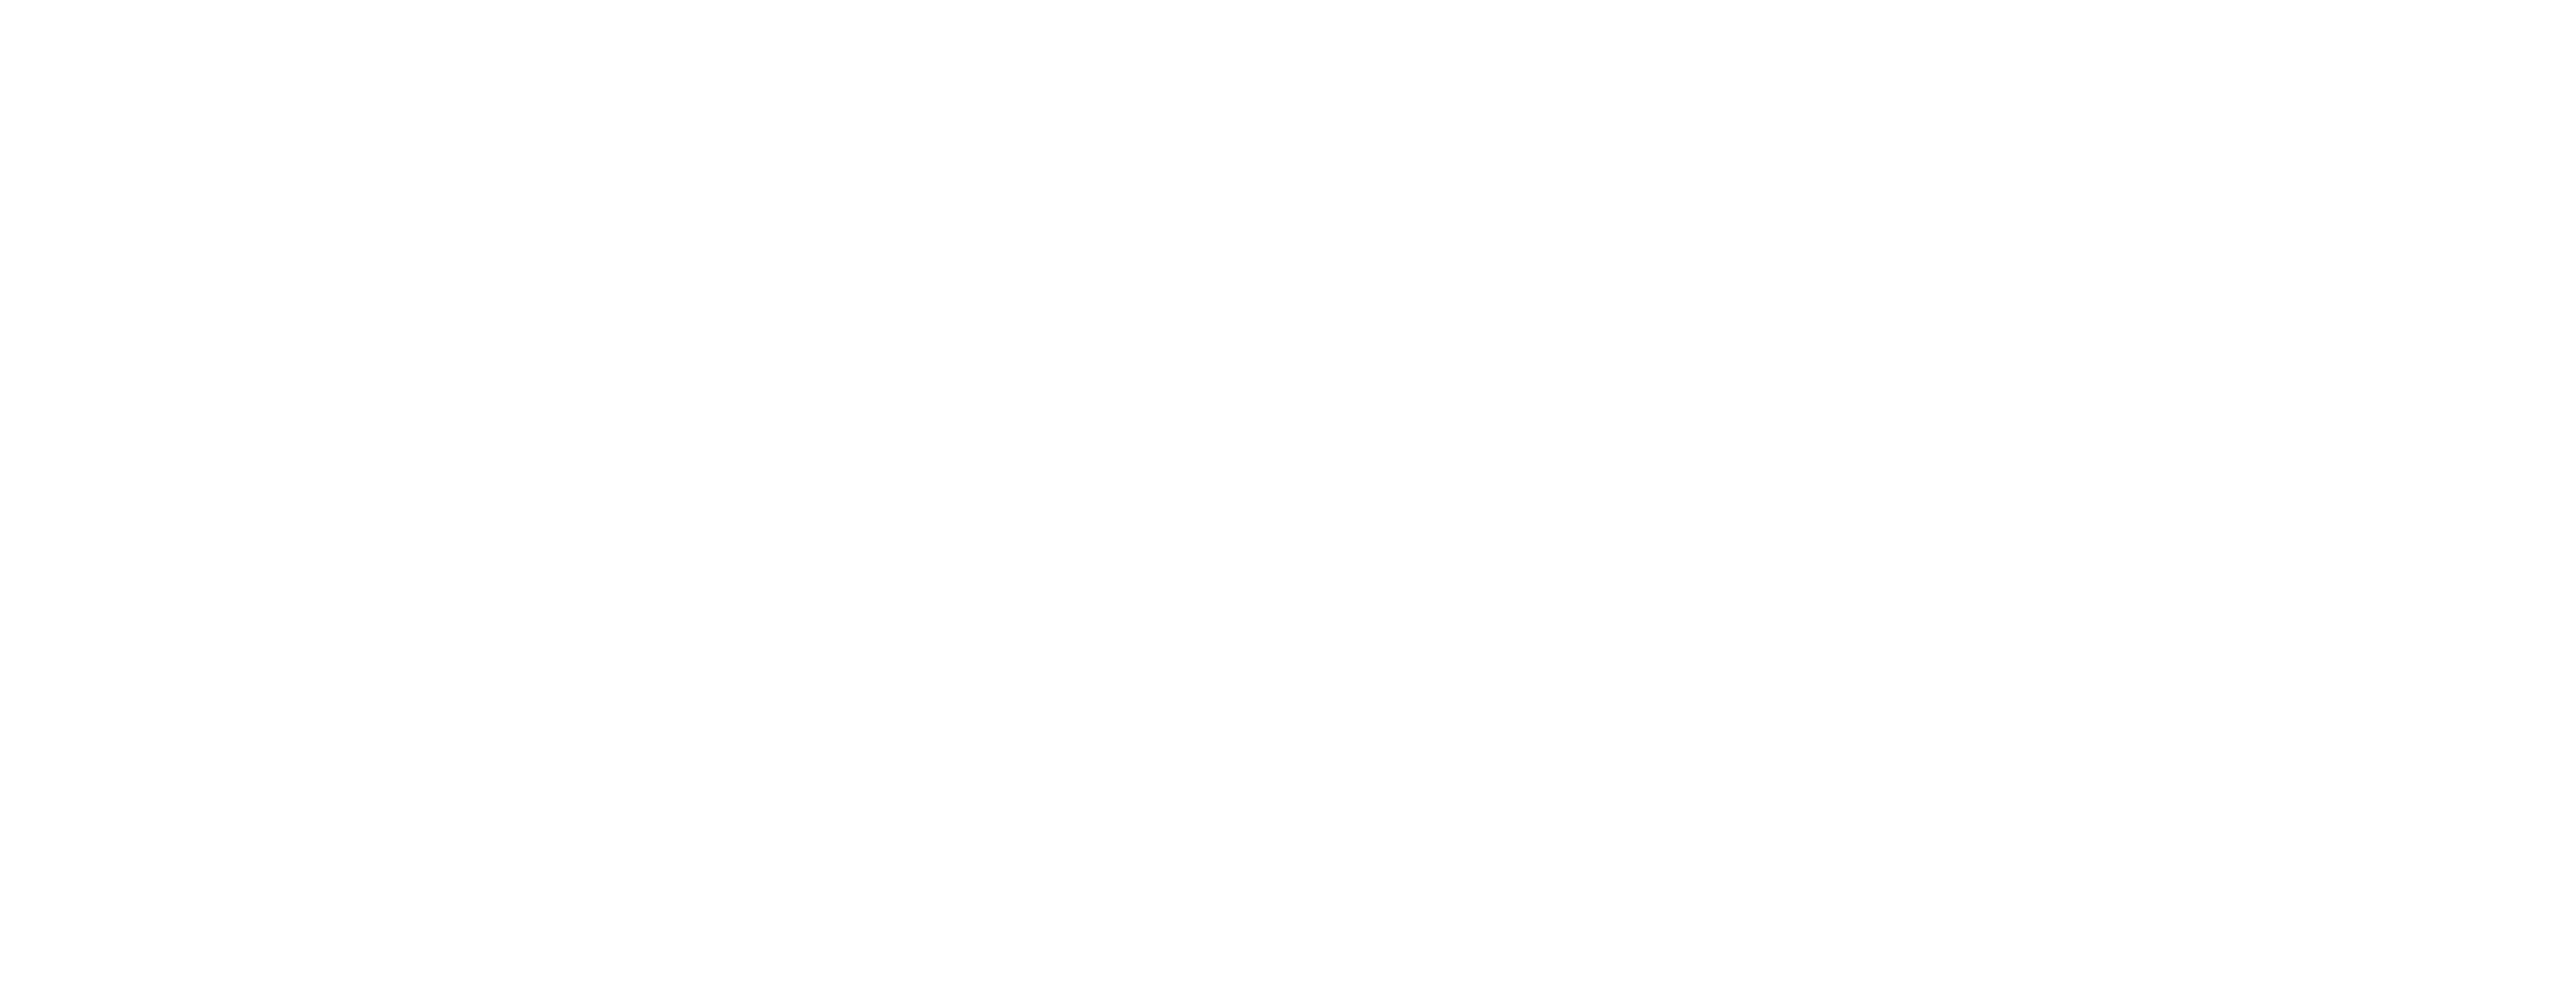 CMAX | CMAX TV: Formational and entertainment television and movies